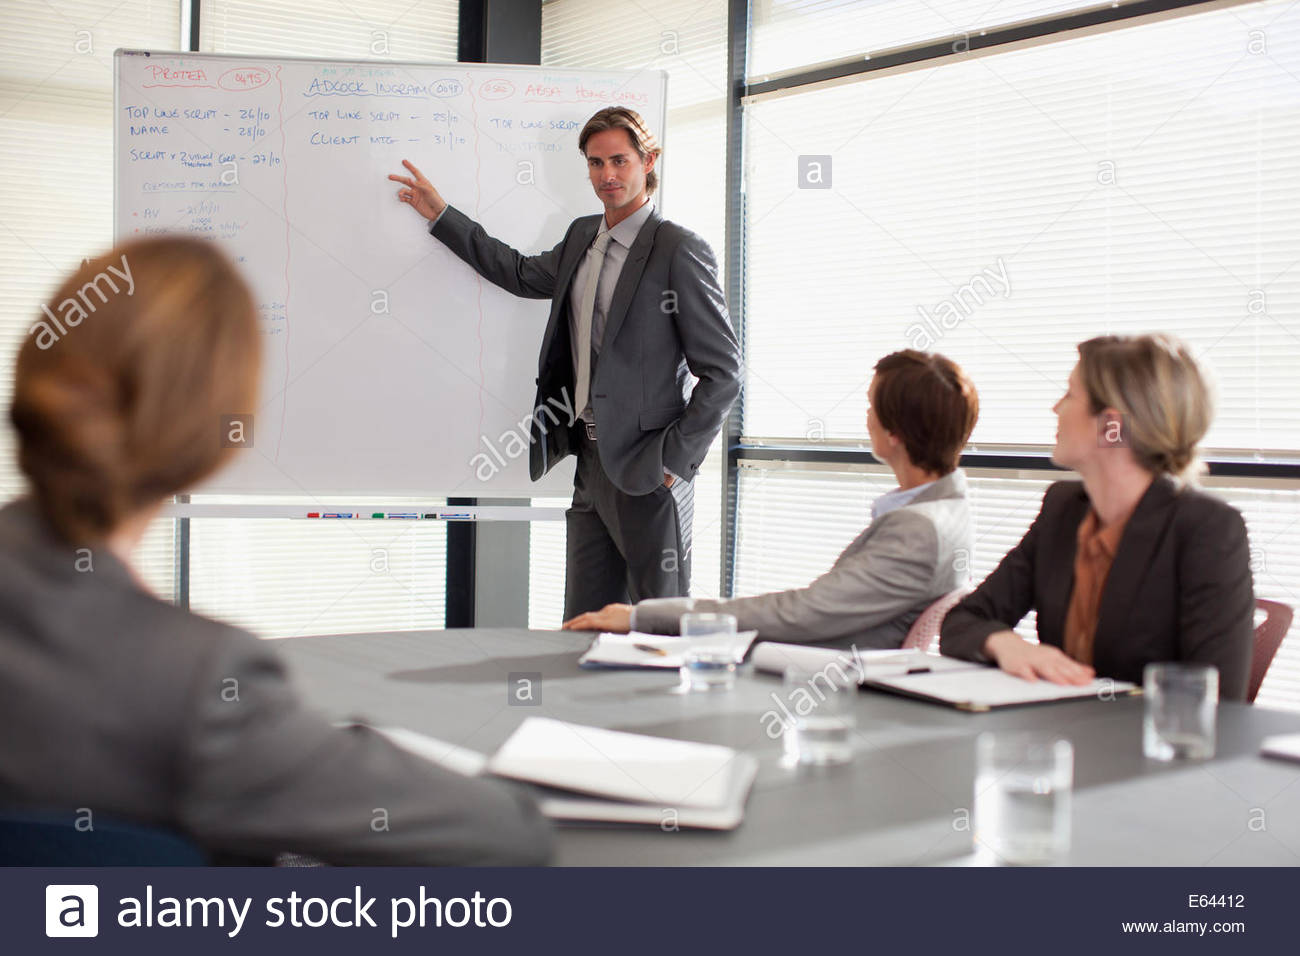 Businessman at whiteboard presenting to co-workers - Stock Image